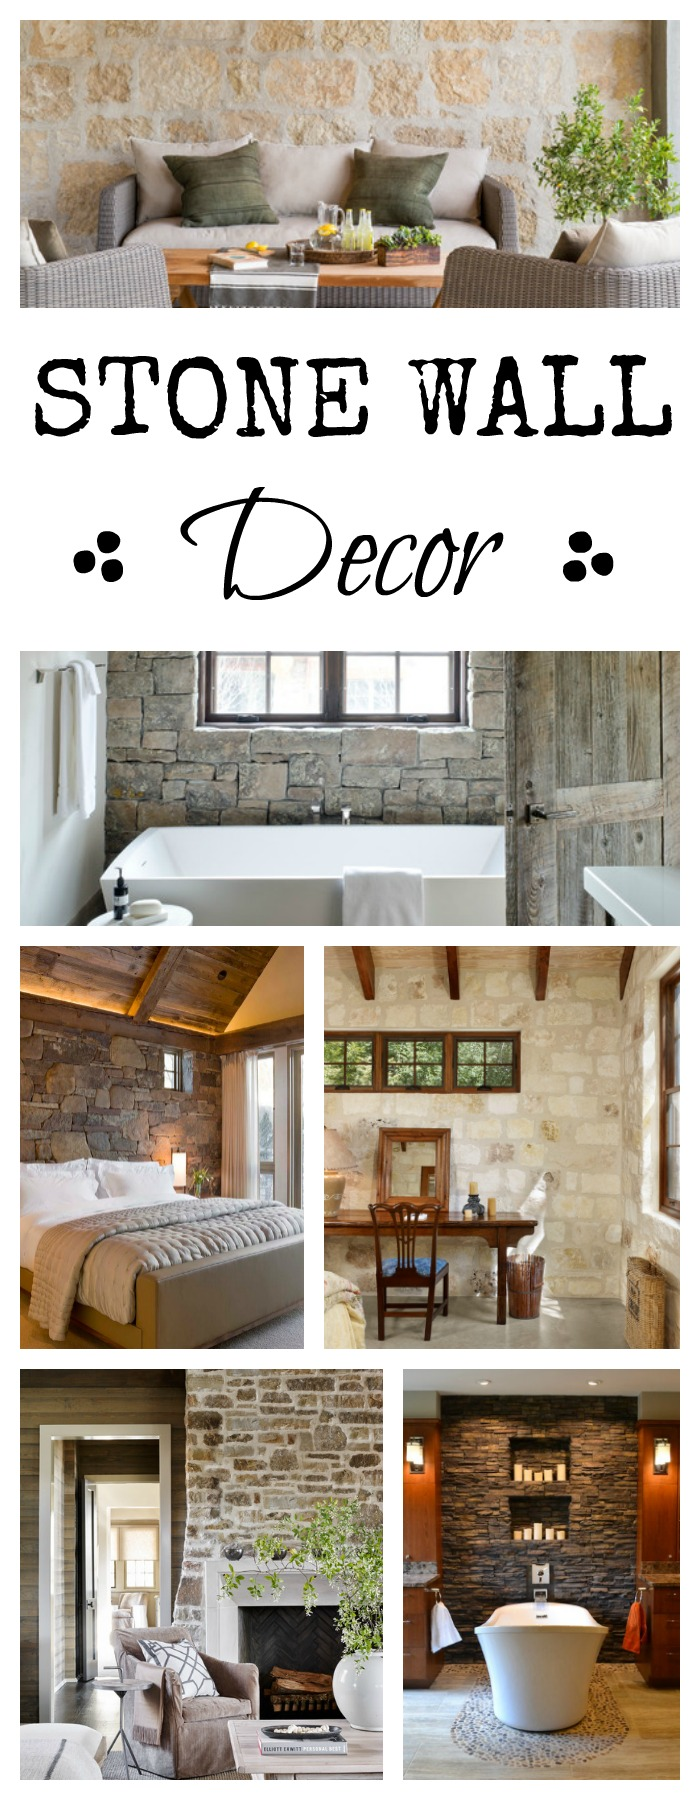 Cute Stone Wall Decor add texture to your home